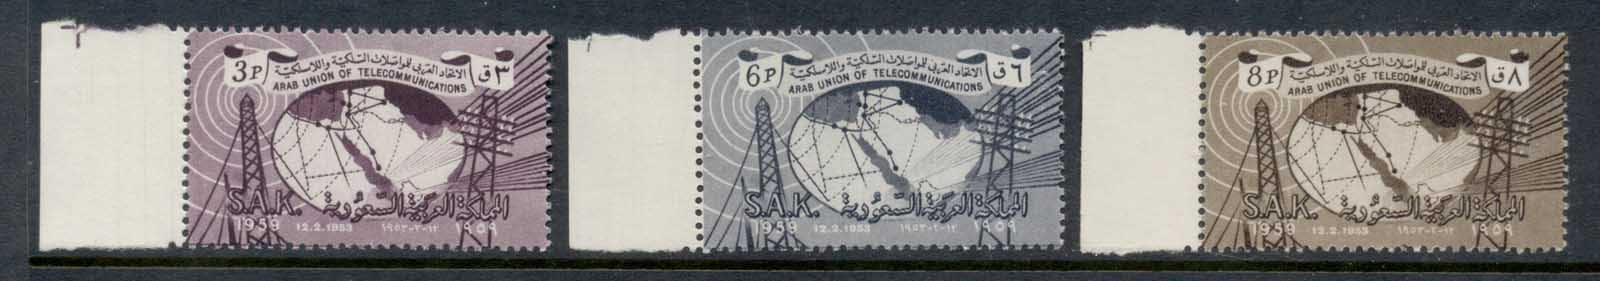 Saudi Arabia 1961 Arab Union of Telecommunications MUH